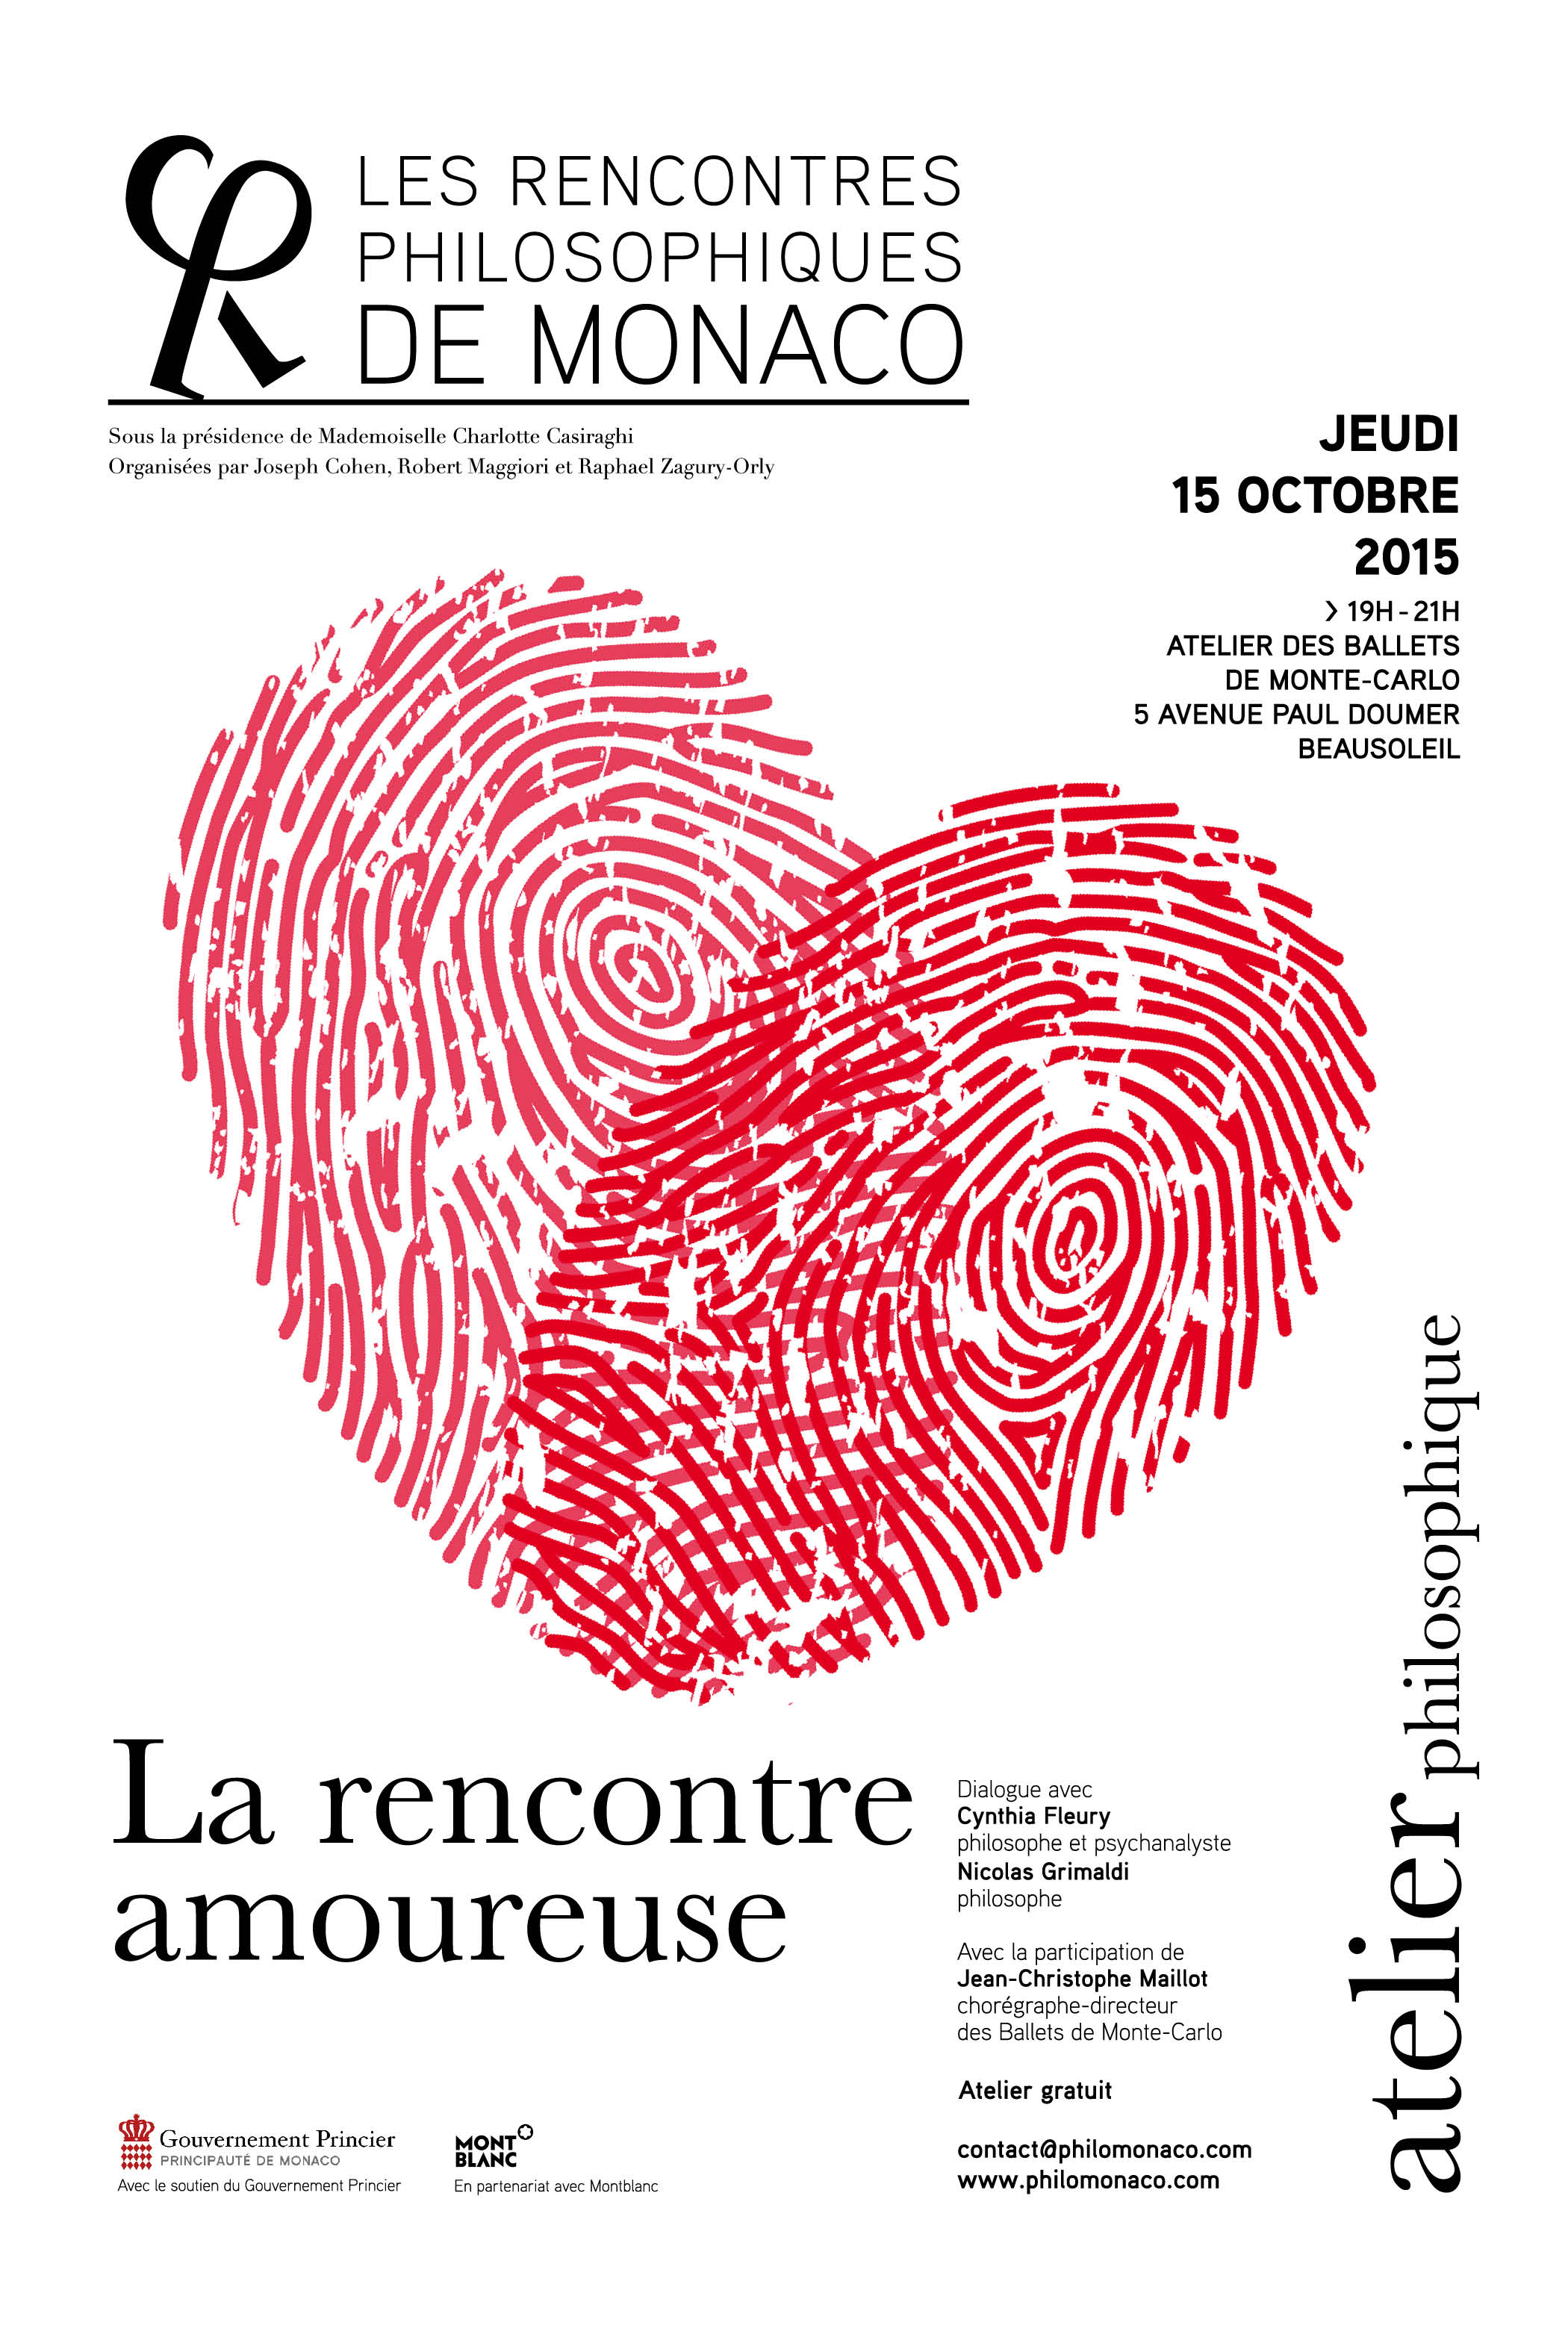 1113, 1113, La rencontre amoureuse - 15 oct 2015 -, La-rencontre-amoureuse-15-oct-2015-.jpg, 684171, http://philomonaco.com/wp-content/uploads/2017/02/La-rencontre-amoureuse-15-oct-2015-.jpg, http://philomonaco.com/atelier/la-rencontre-amoureuse/la-rencontre-amoureuse-15-oct-2015/, , 2, , , la-rencontre-amoureuse-15-oct-2015, inherit, 1111, 2017-02-20 14:47:44, 2017-02-20 14:47:47, 0, image/jpeg, image, jpeg, http://philomonaco.com/wp-includes/images/media/default.png, 2100, 3150, Array